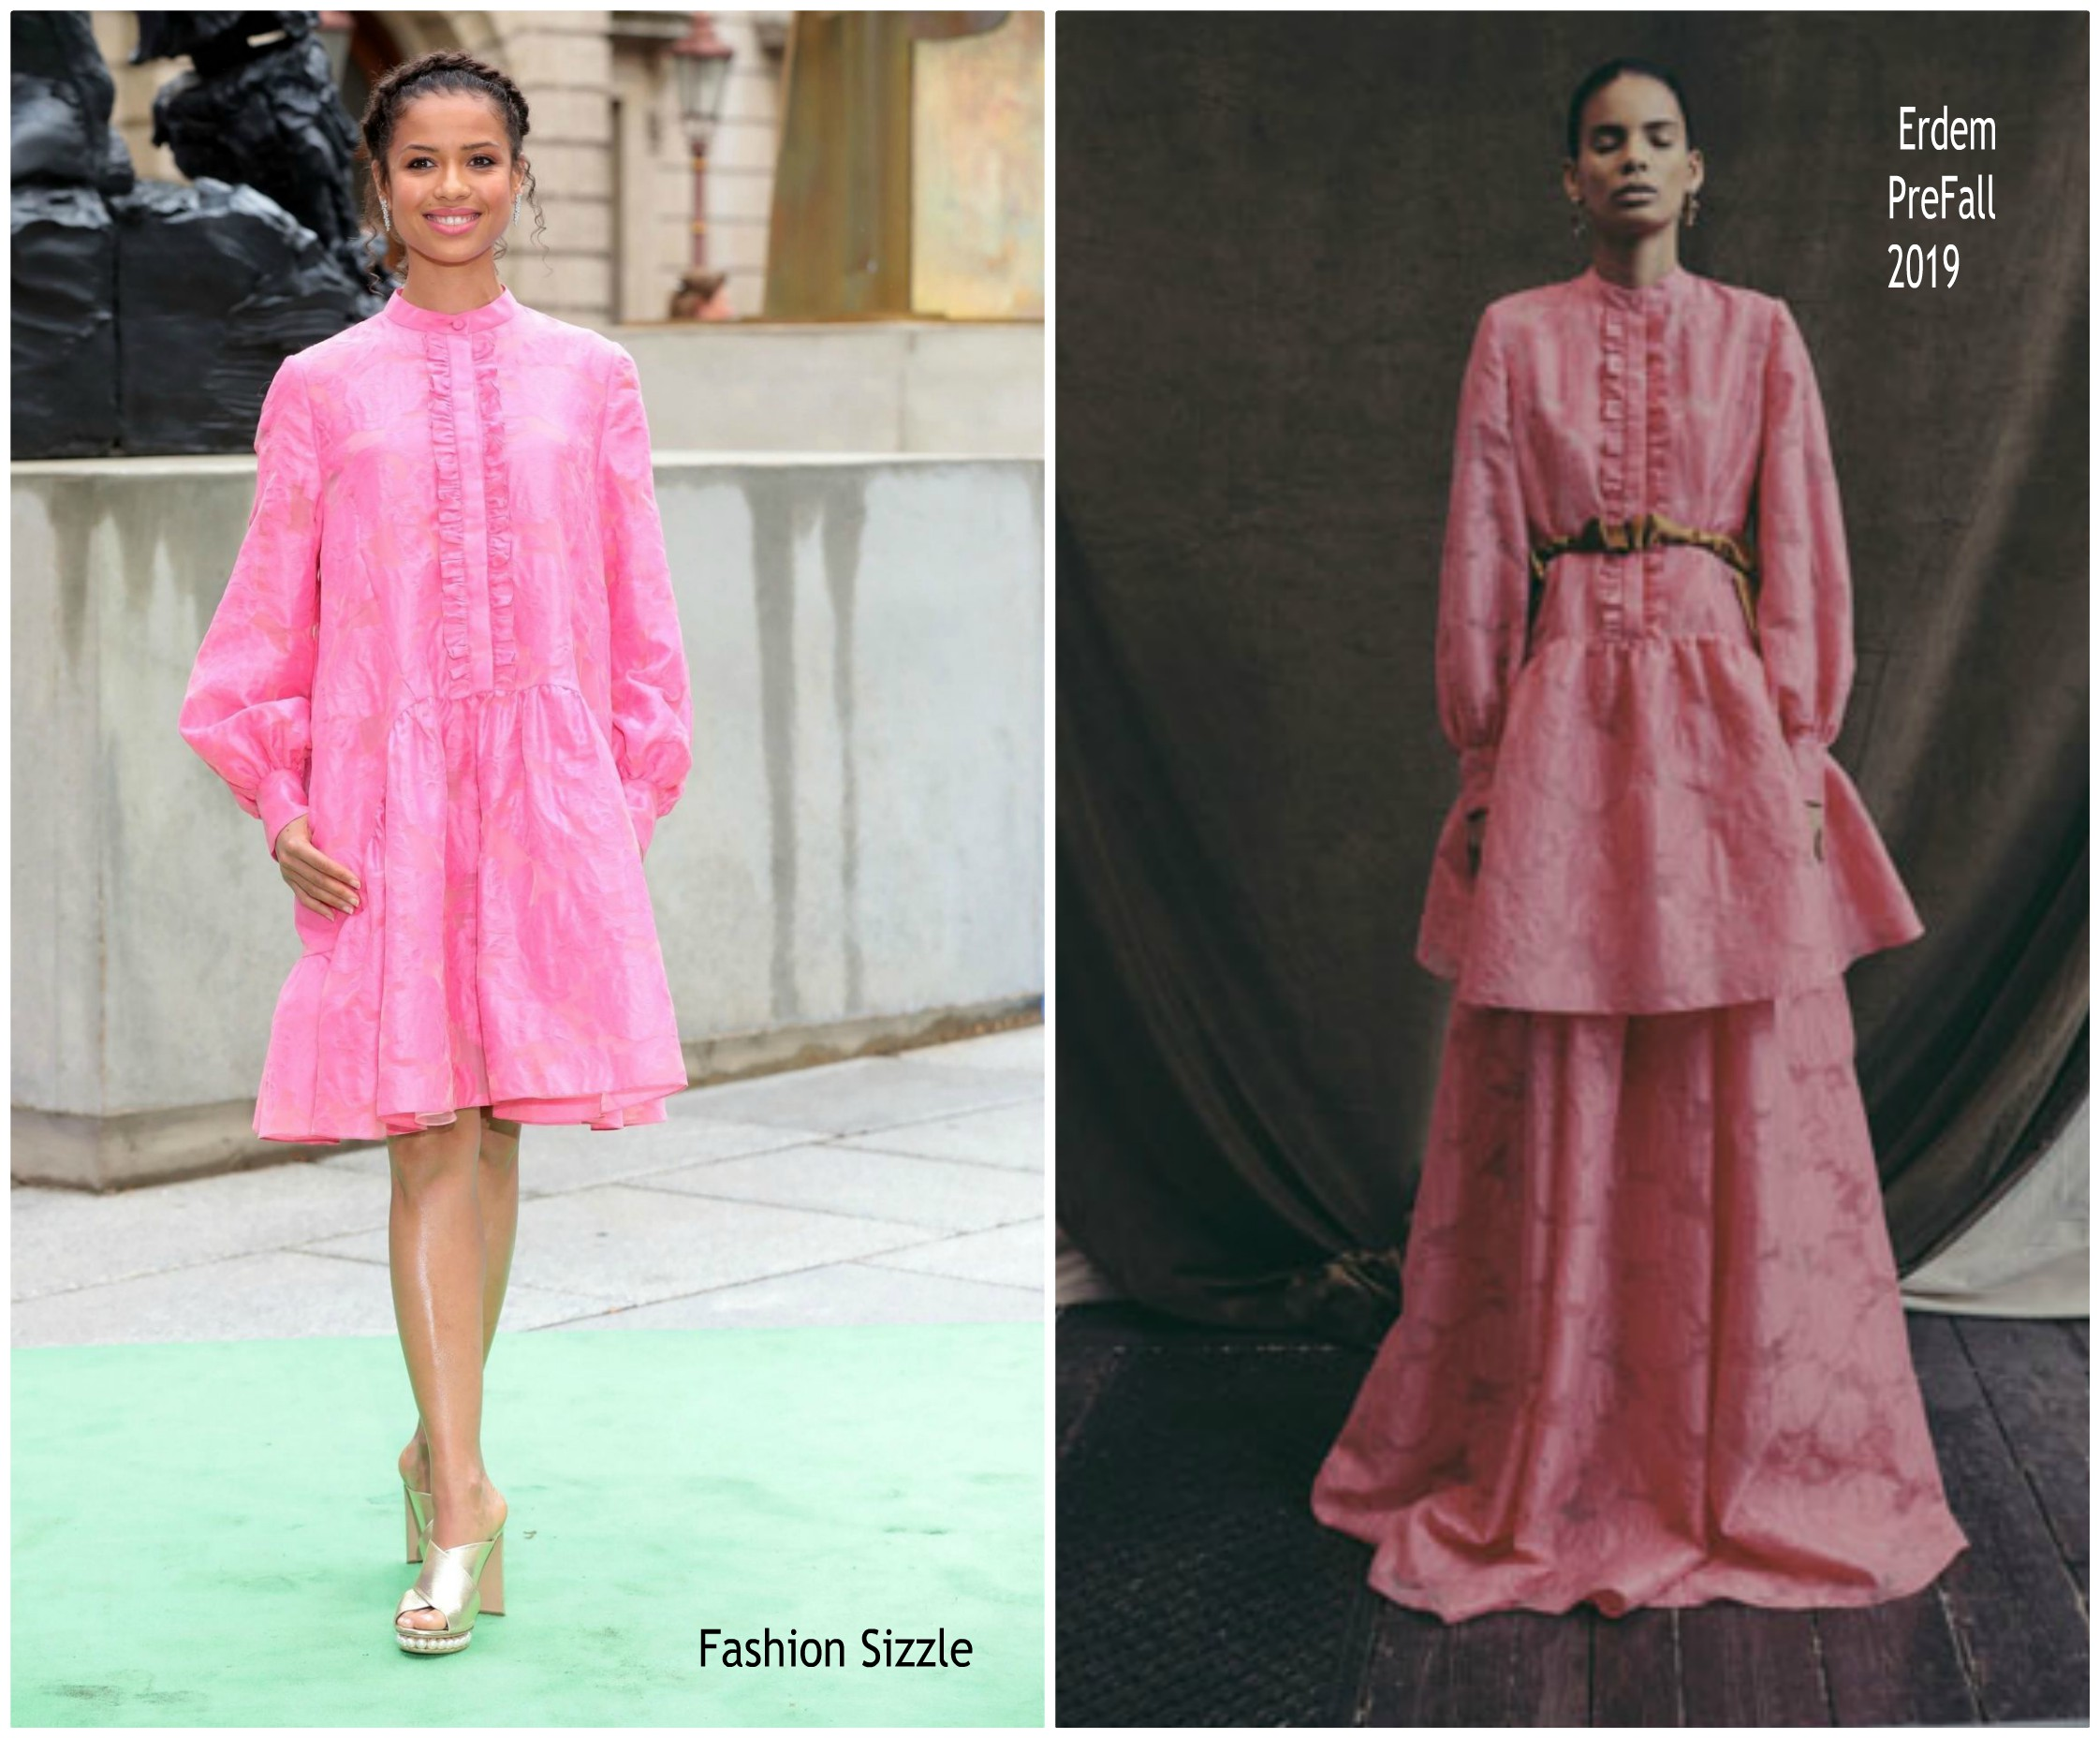 gugu-mbatha-raw-in-erdem-royal-academy-of-arts-summer-exhibition